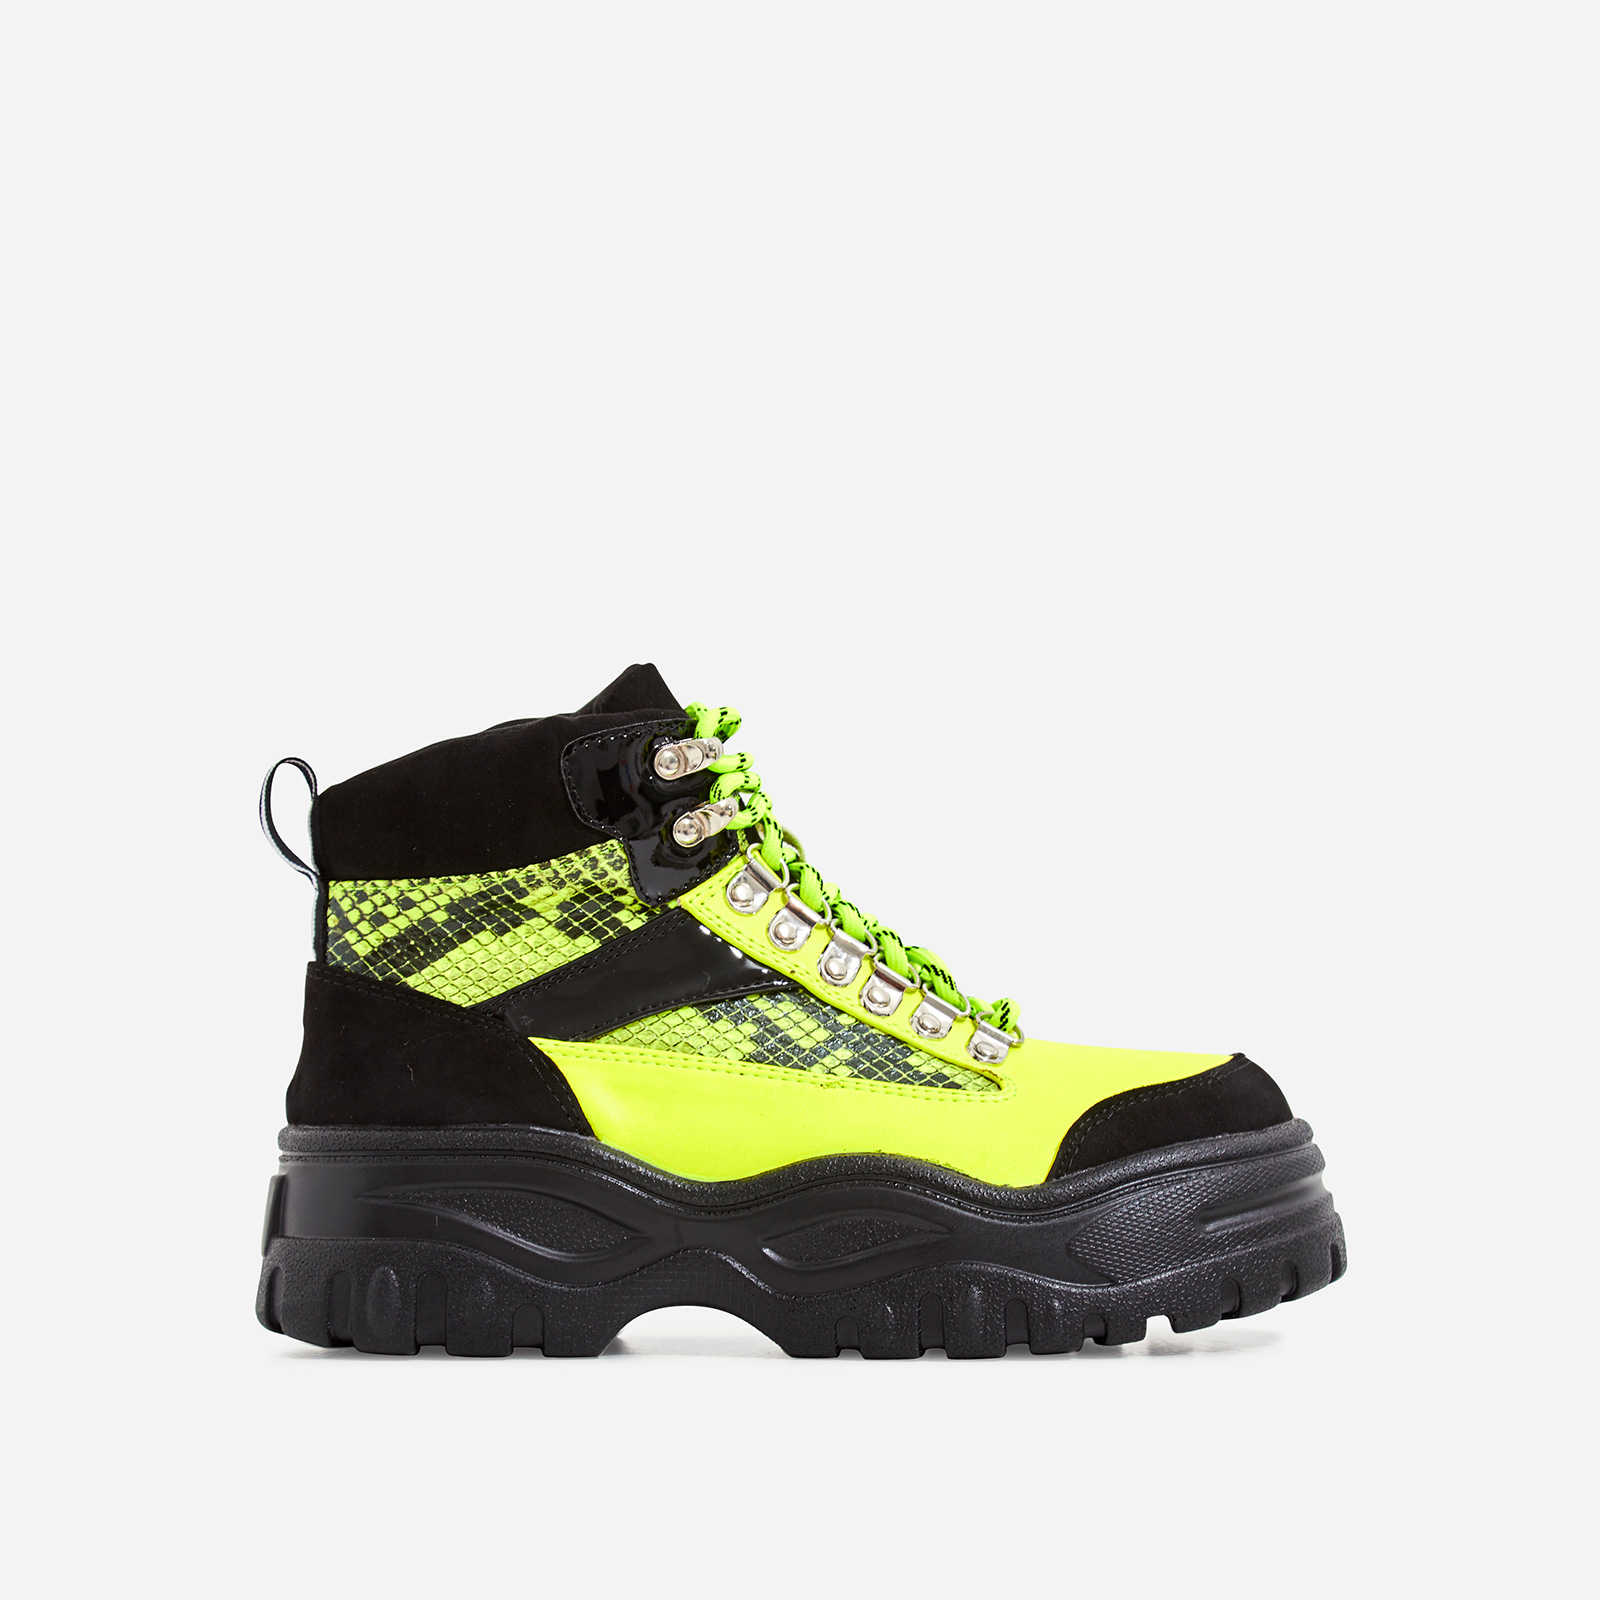 Hammer Lace Up Chunky Sole Ankle Hiker Boot In Neon Green Snake Print Faux Leather